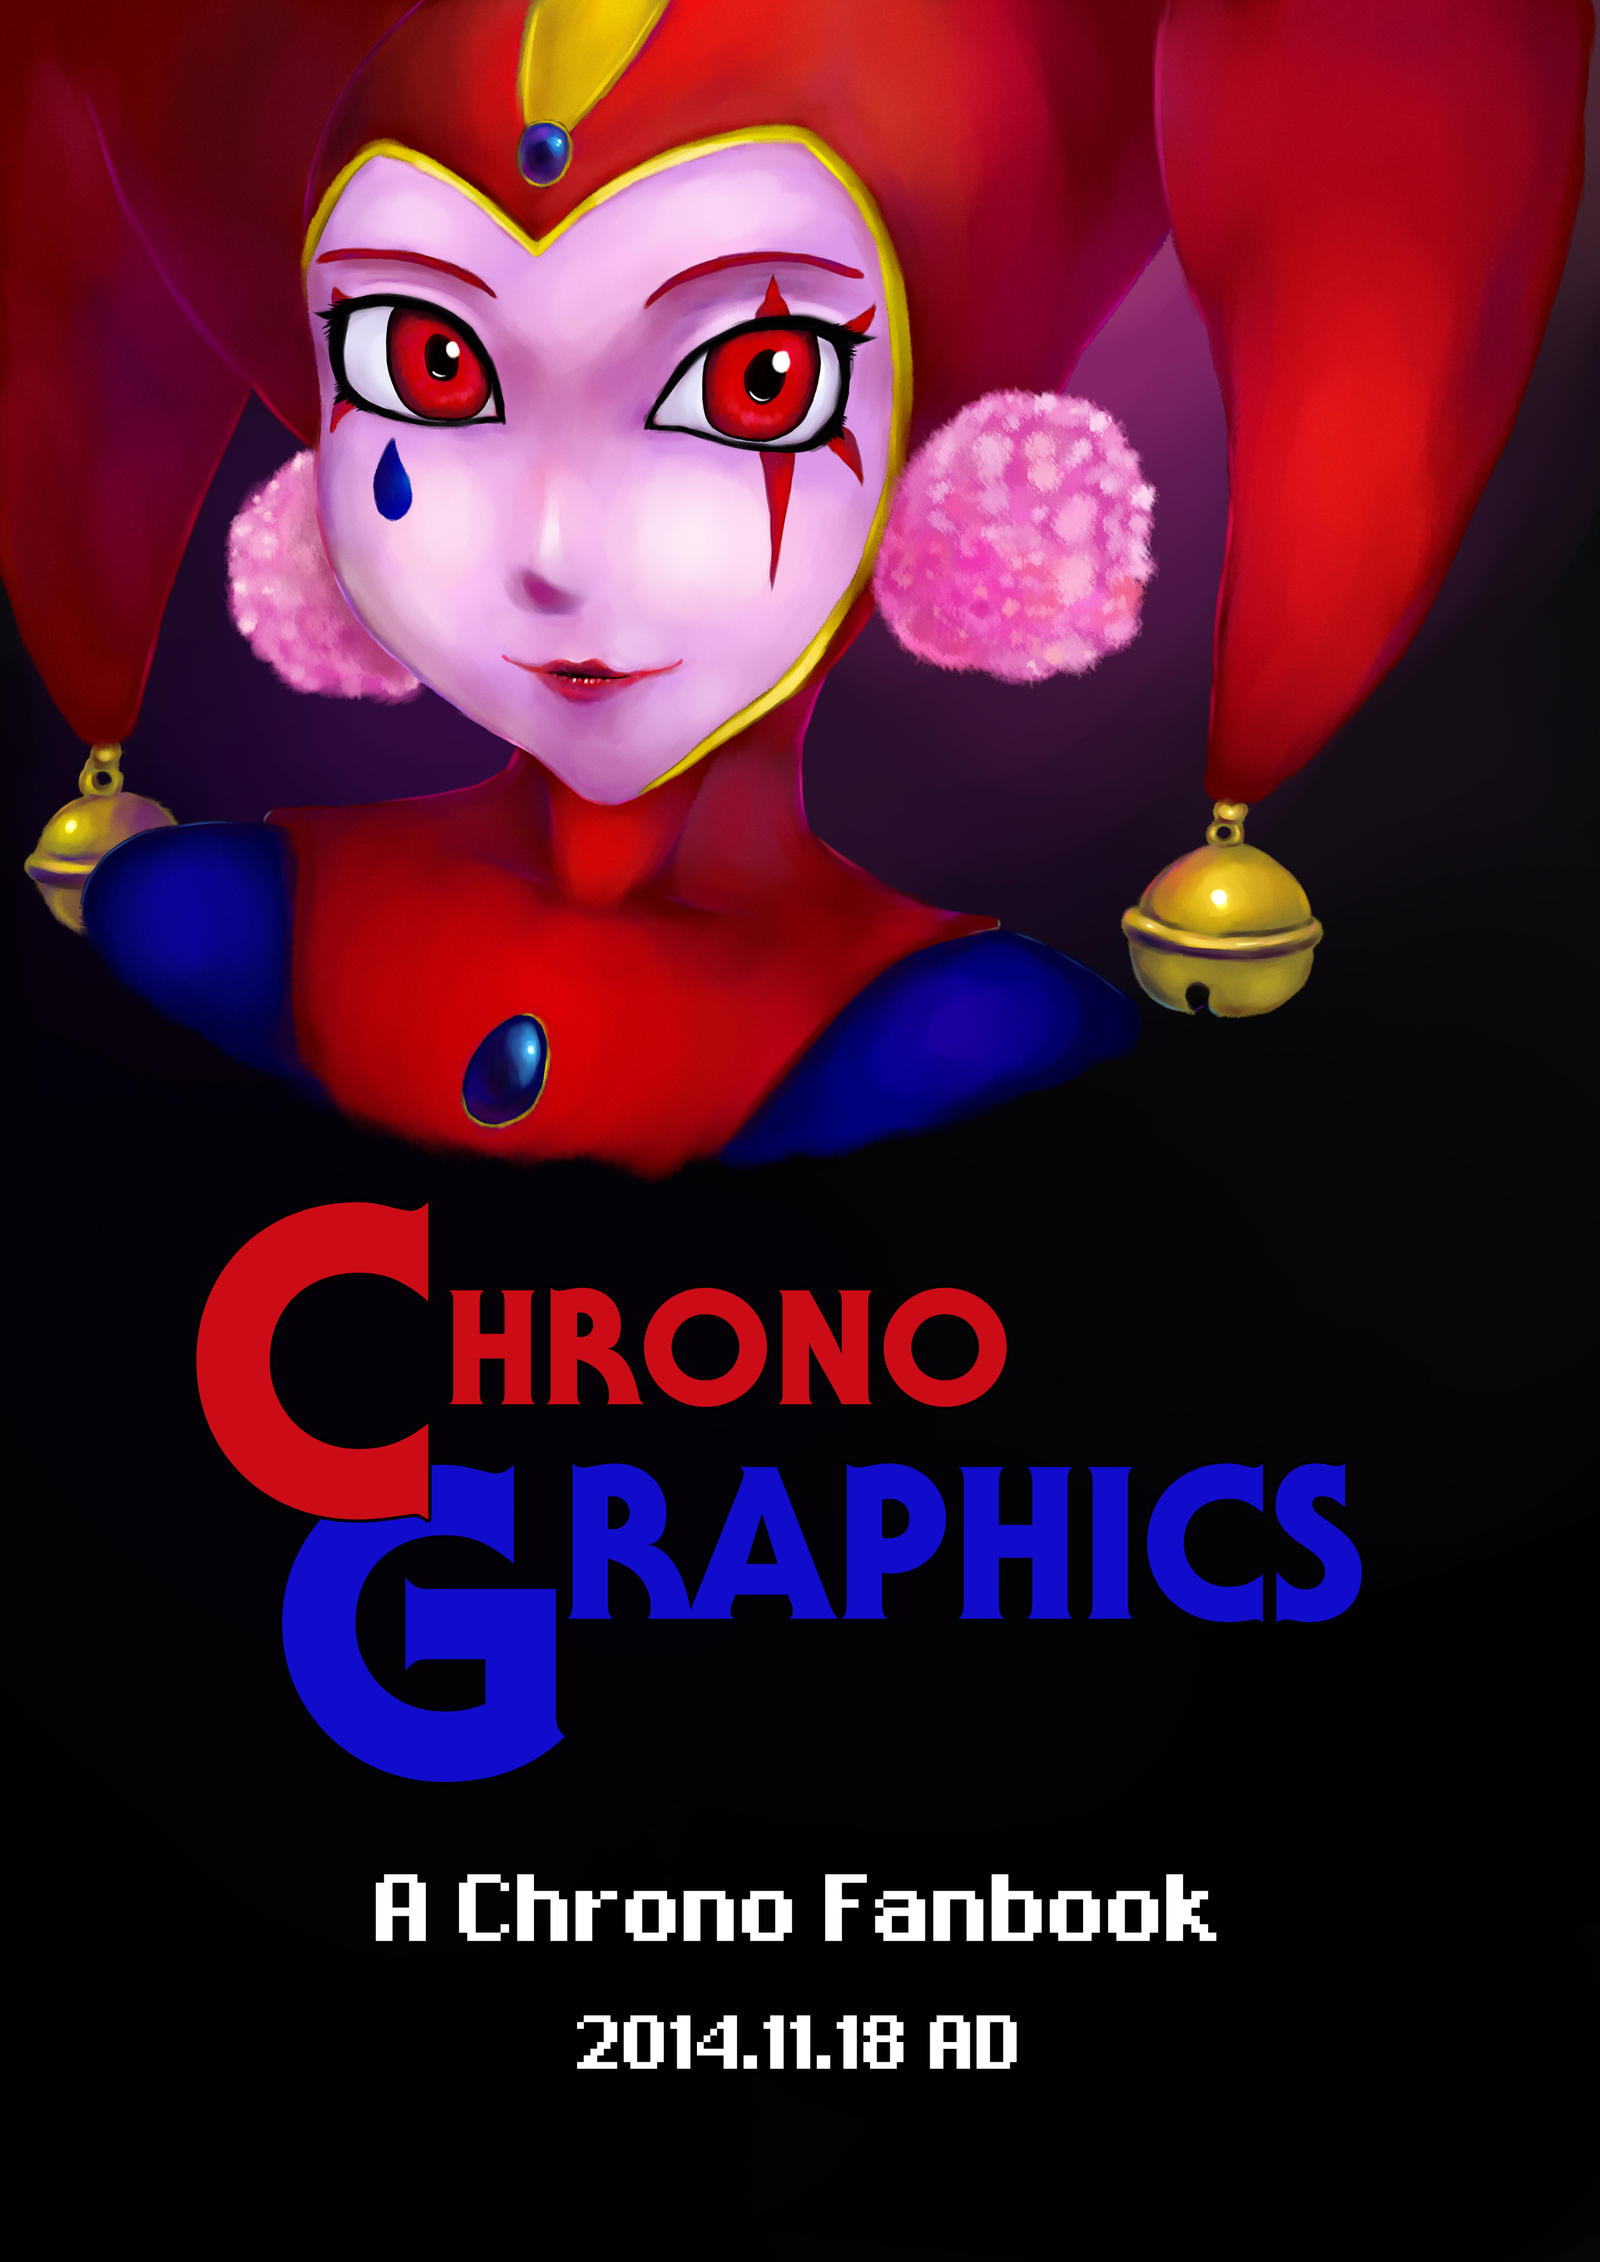 Chrono Graphics, a Chrono fanbook coming SOON by funnbunns